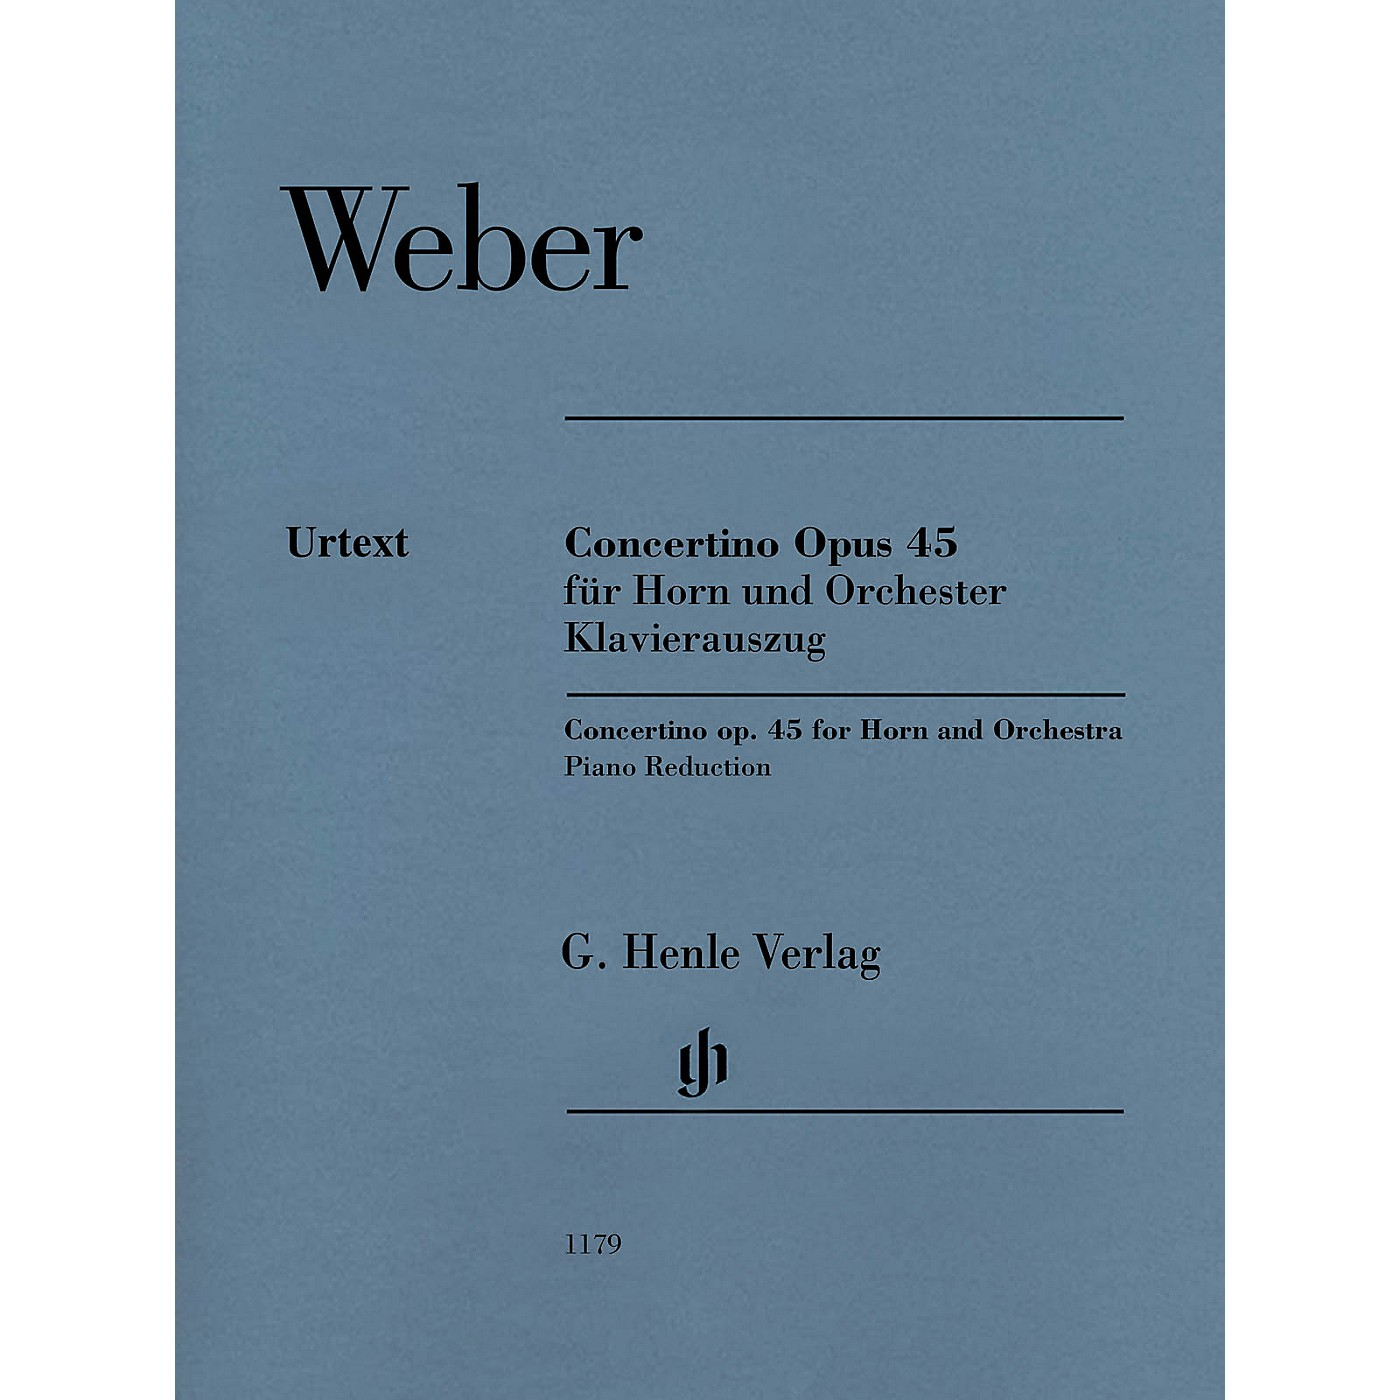 G. Henle Verlag Concertino Op. 45 for Horn and Piano Reduction by Weber thumbnail